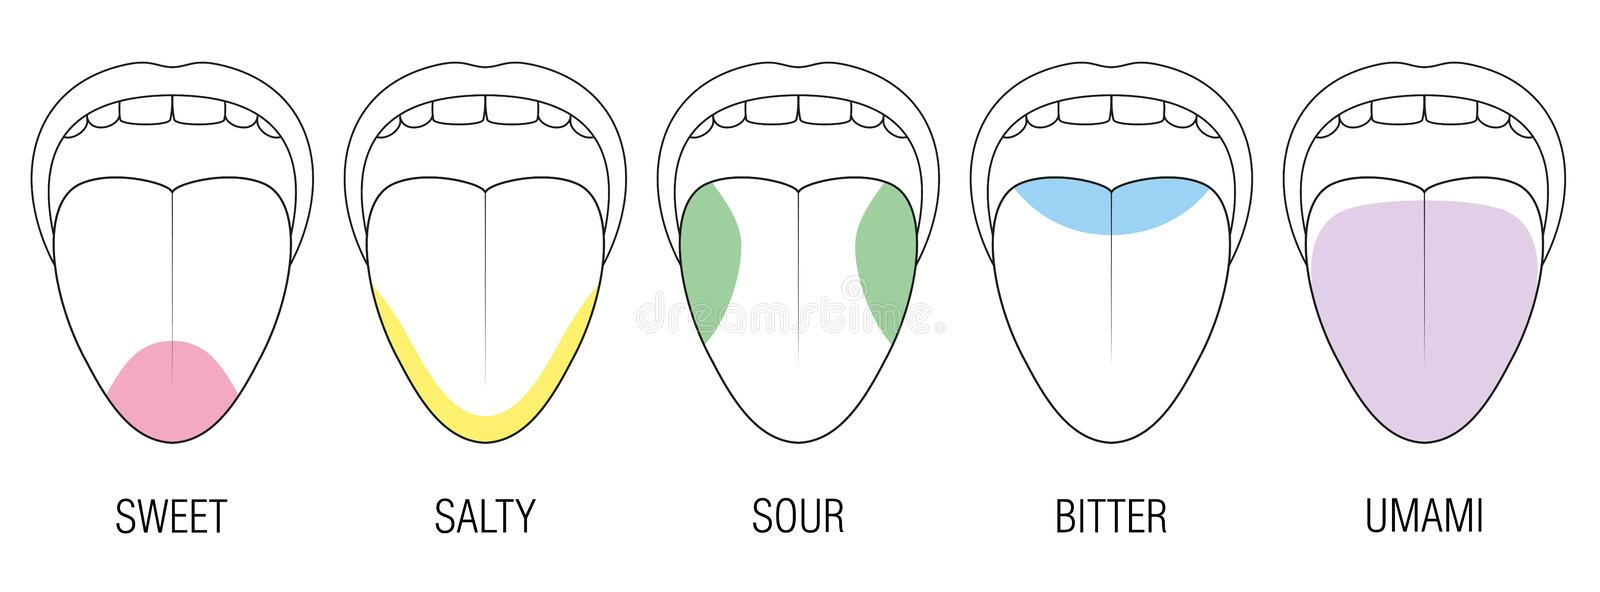 Taste Areas Human Tongue Colors Illustration. Human tongue with five taste areas - bitter, sour, sweet, salty and umami perception - colored division with zones vector illustration